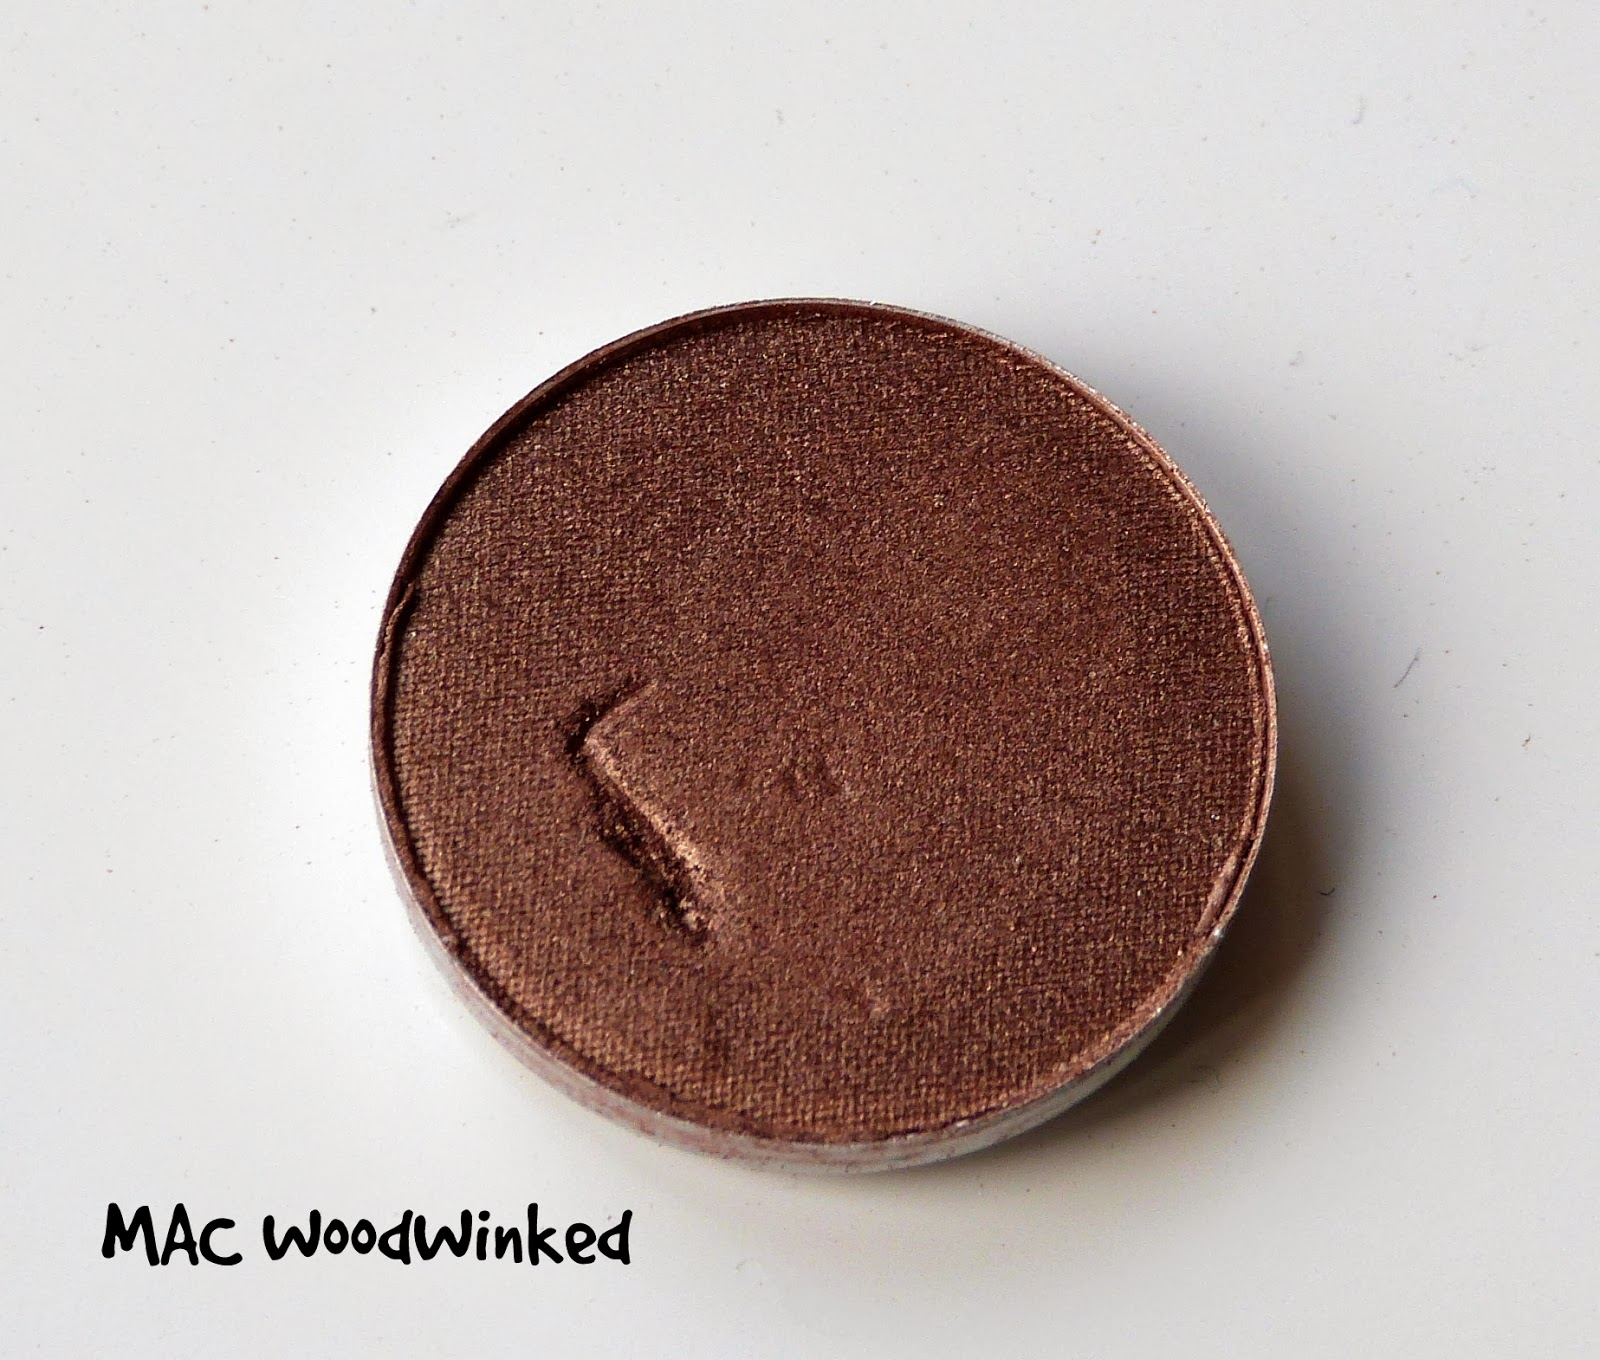 MAC Woodwinked